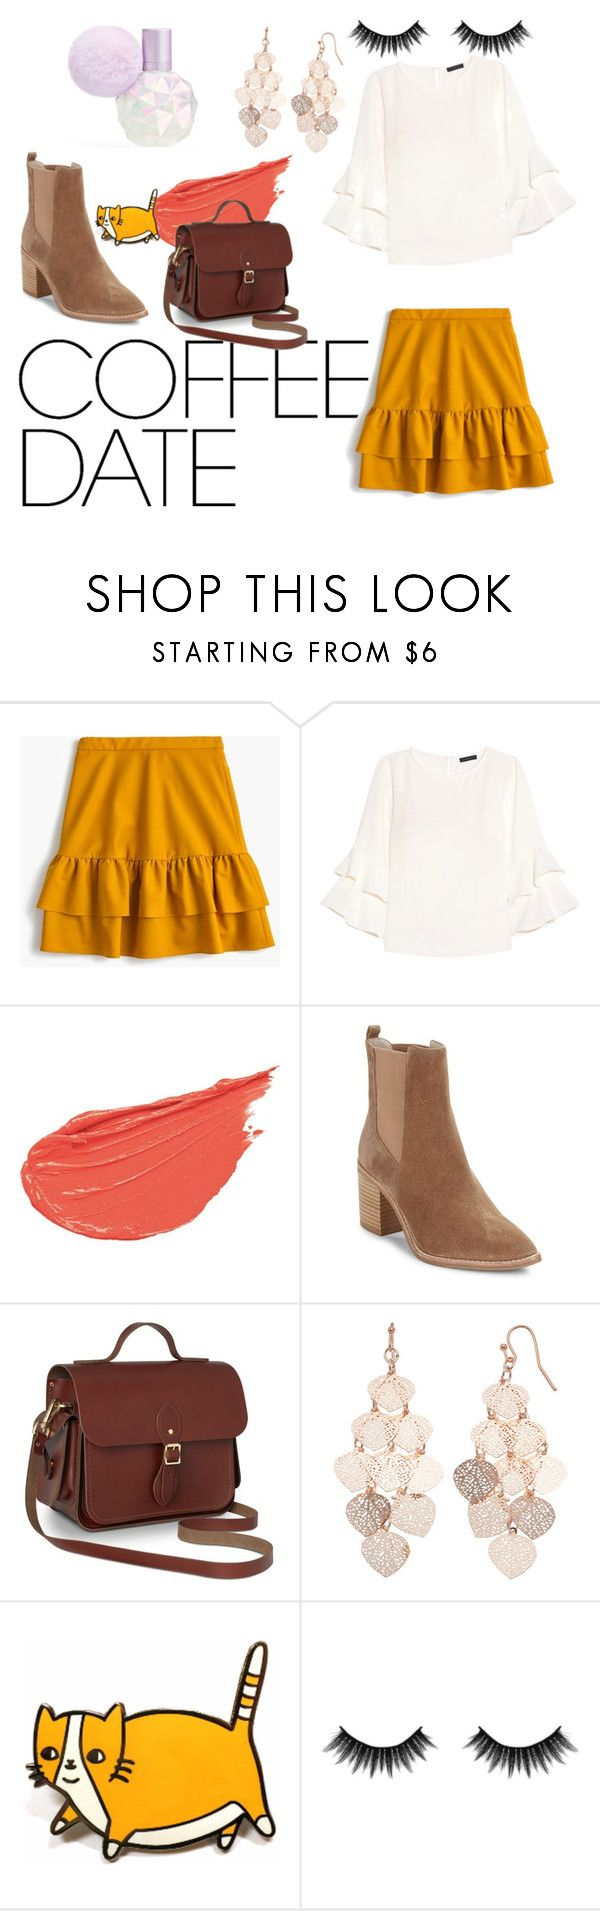 """""""Just a quick last minute look"""" by meliflare ❤ liked on Polyvore featuring J.Crew, Kenneth Cole, LC Lauren Conrad, Morphe and CoffeeDate"""